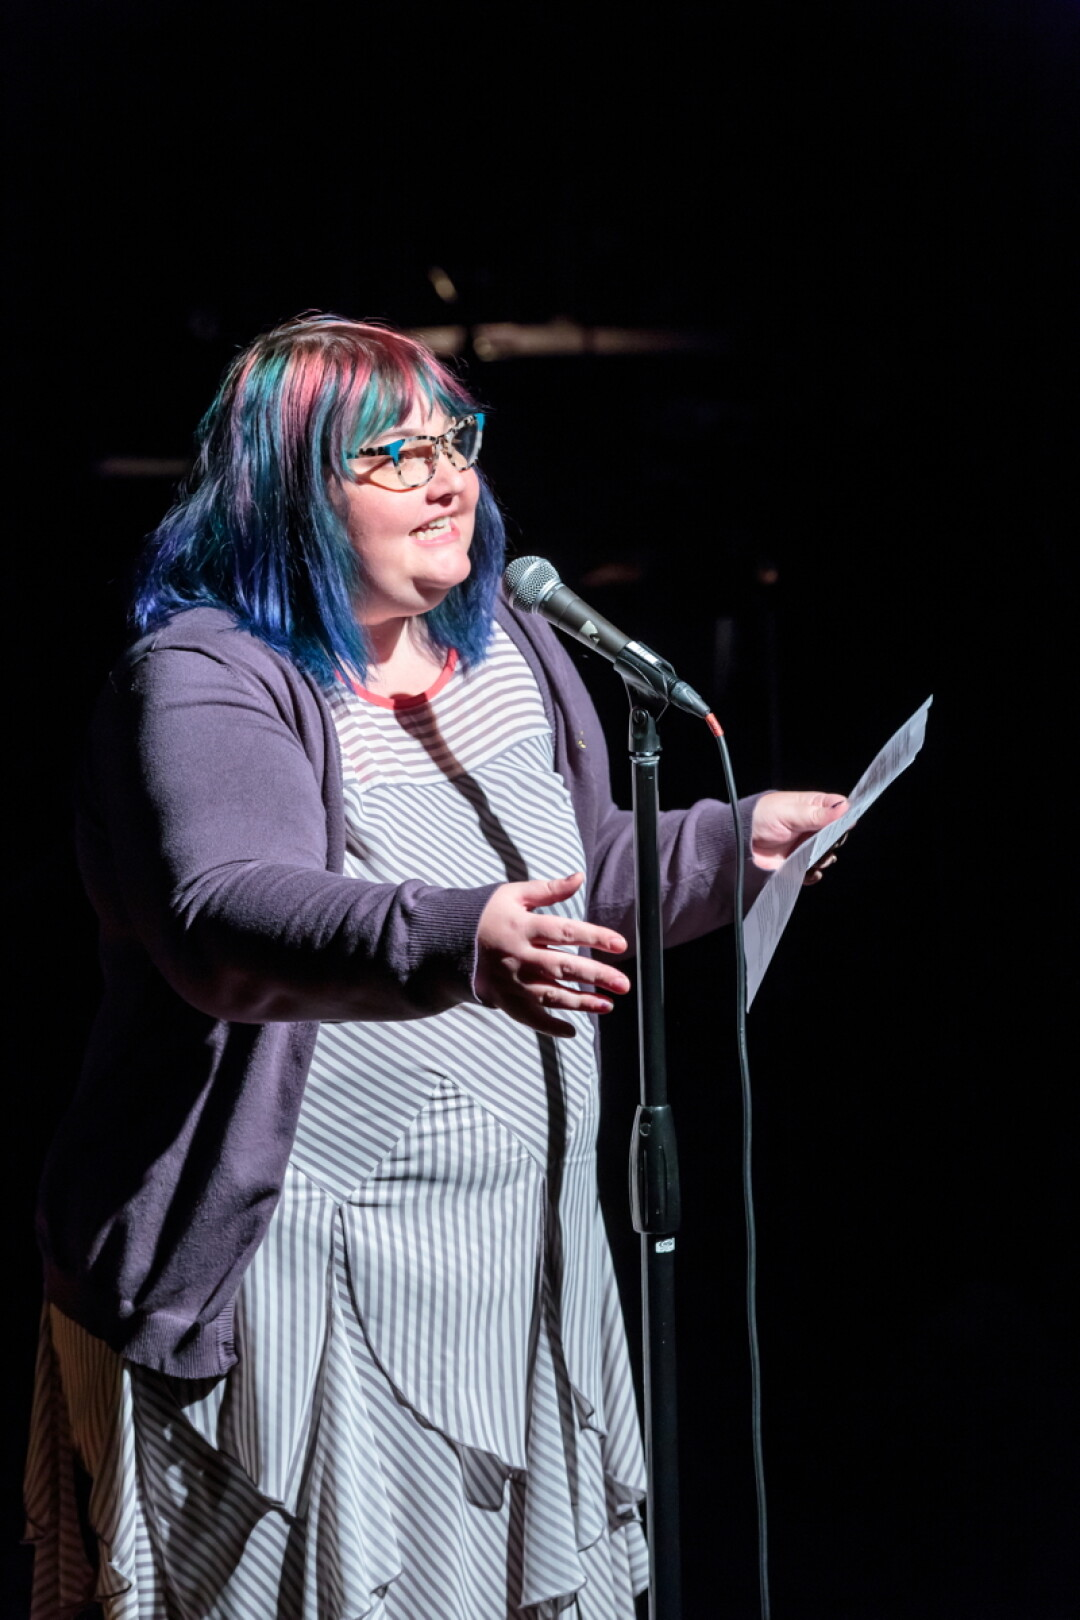 SPOKEN NERD. Strike Theater co-founder and ComCon co-organizer Allison Broeren grew up in Eau Claire. ComCon is a winter retreat/workshopping weekend for comedy writers and performers coming up in February on Lake Holcombe.